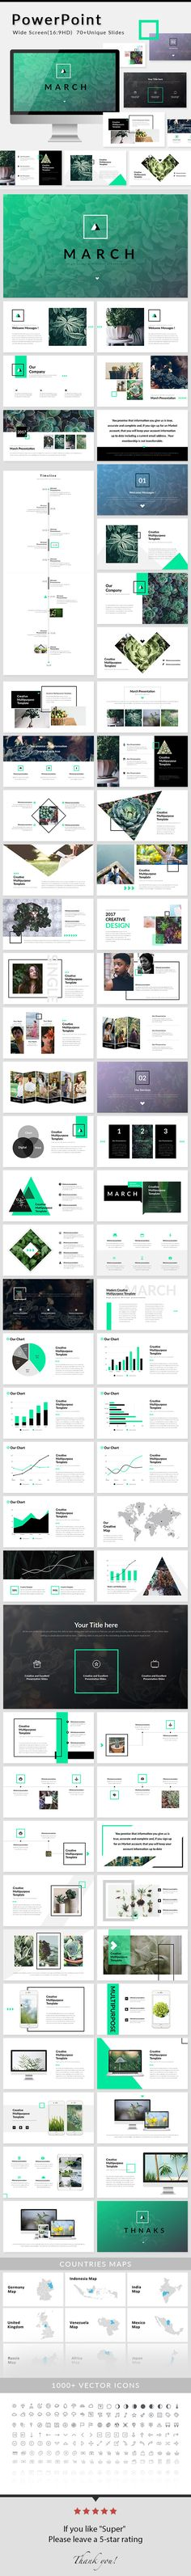 March - PowerPoint #Presentation Template - #Creative #PowerPoint Templates Download here: https://graphicriver.net/item/march-powerpoint-presentation-template/19612399?ref=alena994